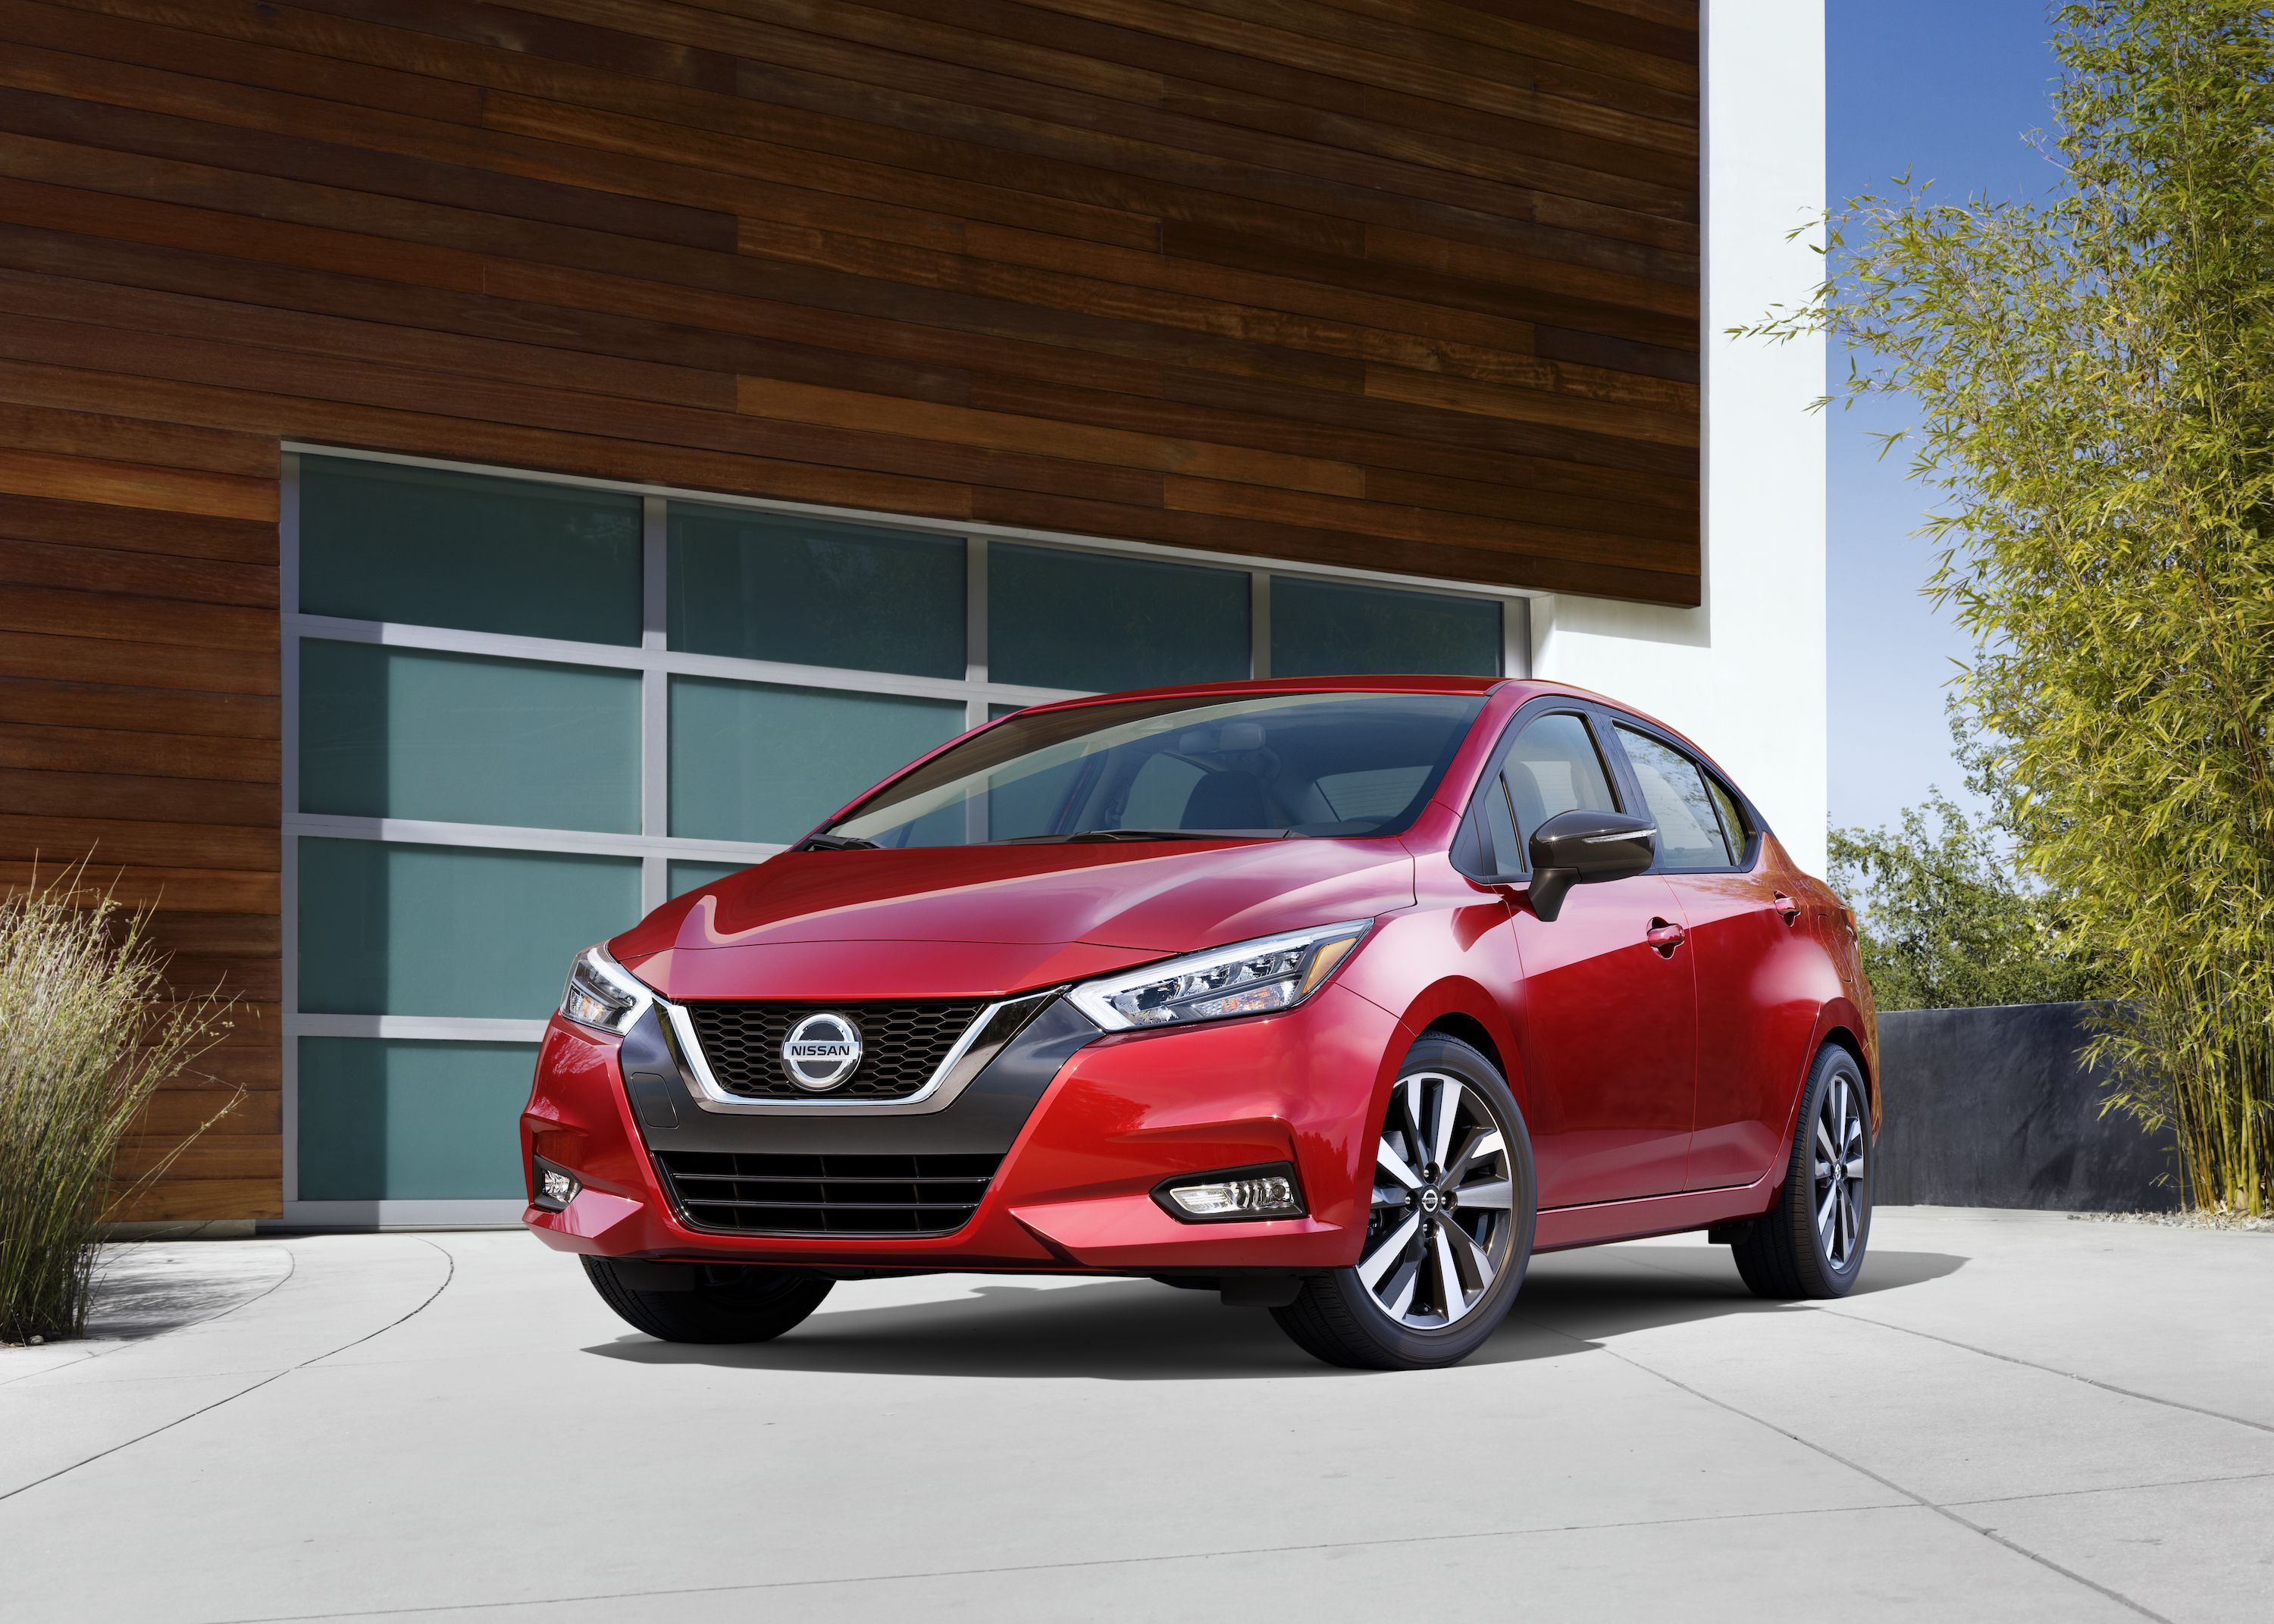 2020 Nissan Versa Unveiled With Standard Safety Tech Sleek Styling Nissan Versa New Nissan Nissan